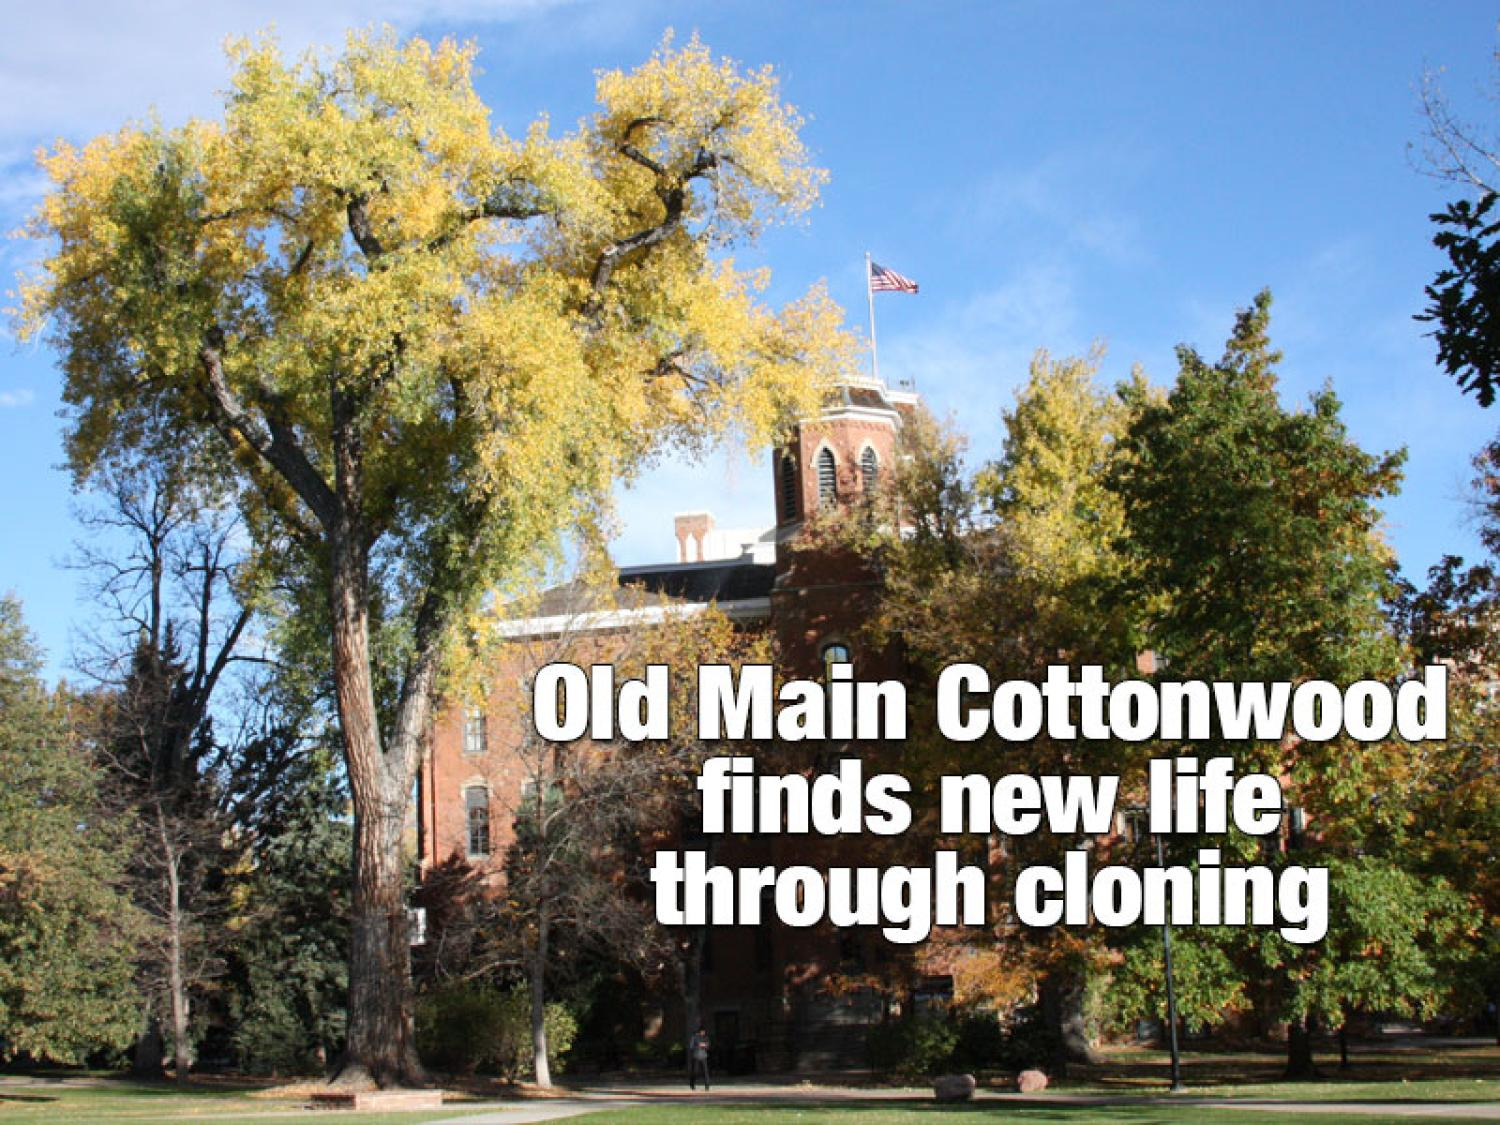 Old Main Cottonwood in front of Old Main